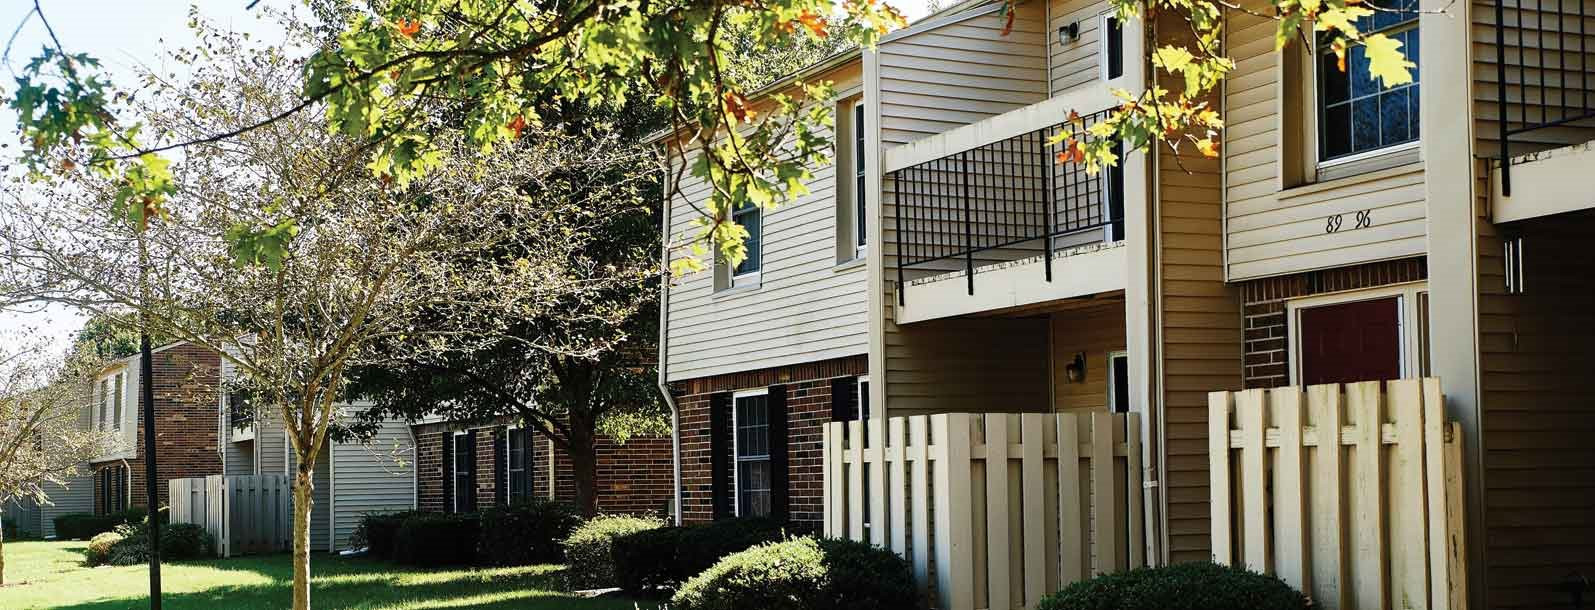 Regency Park Bowling Green Apartments In Bowling Green Ky